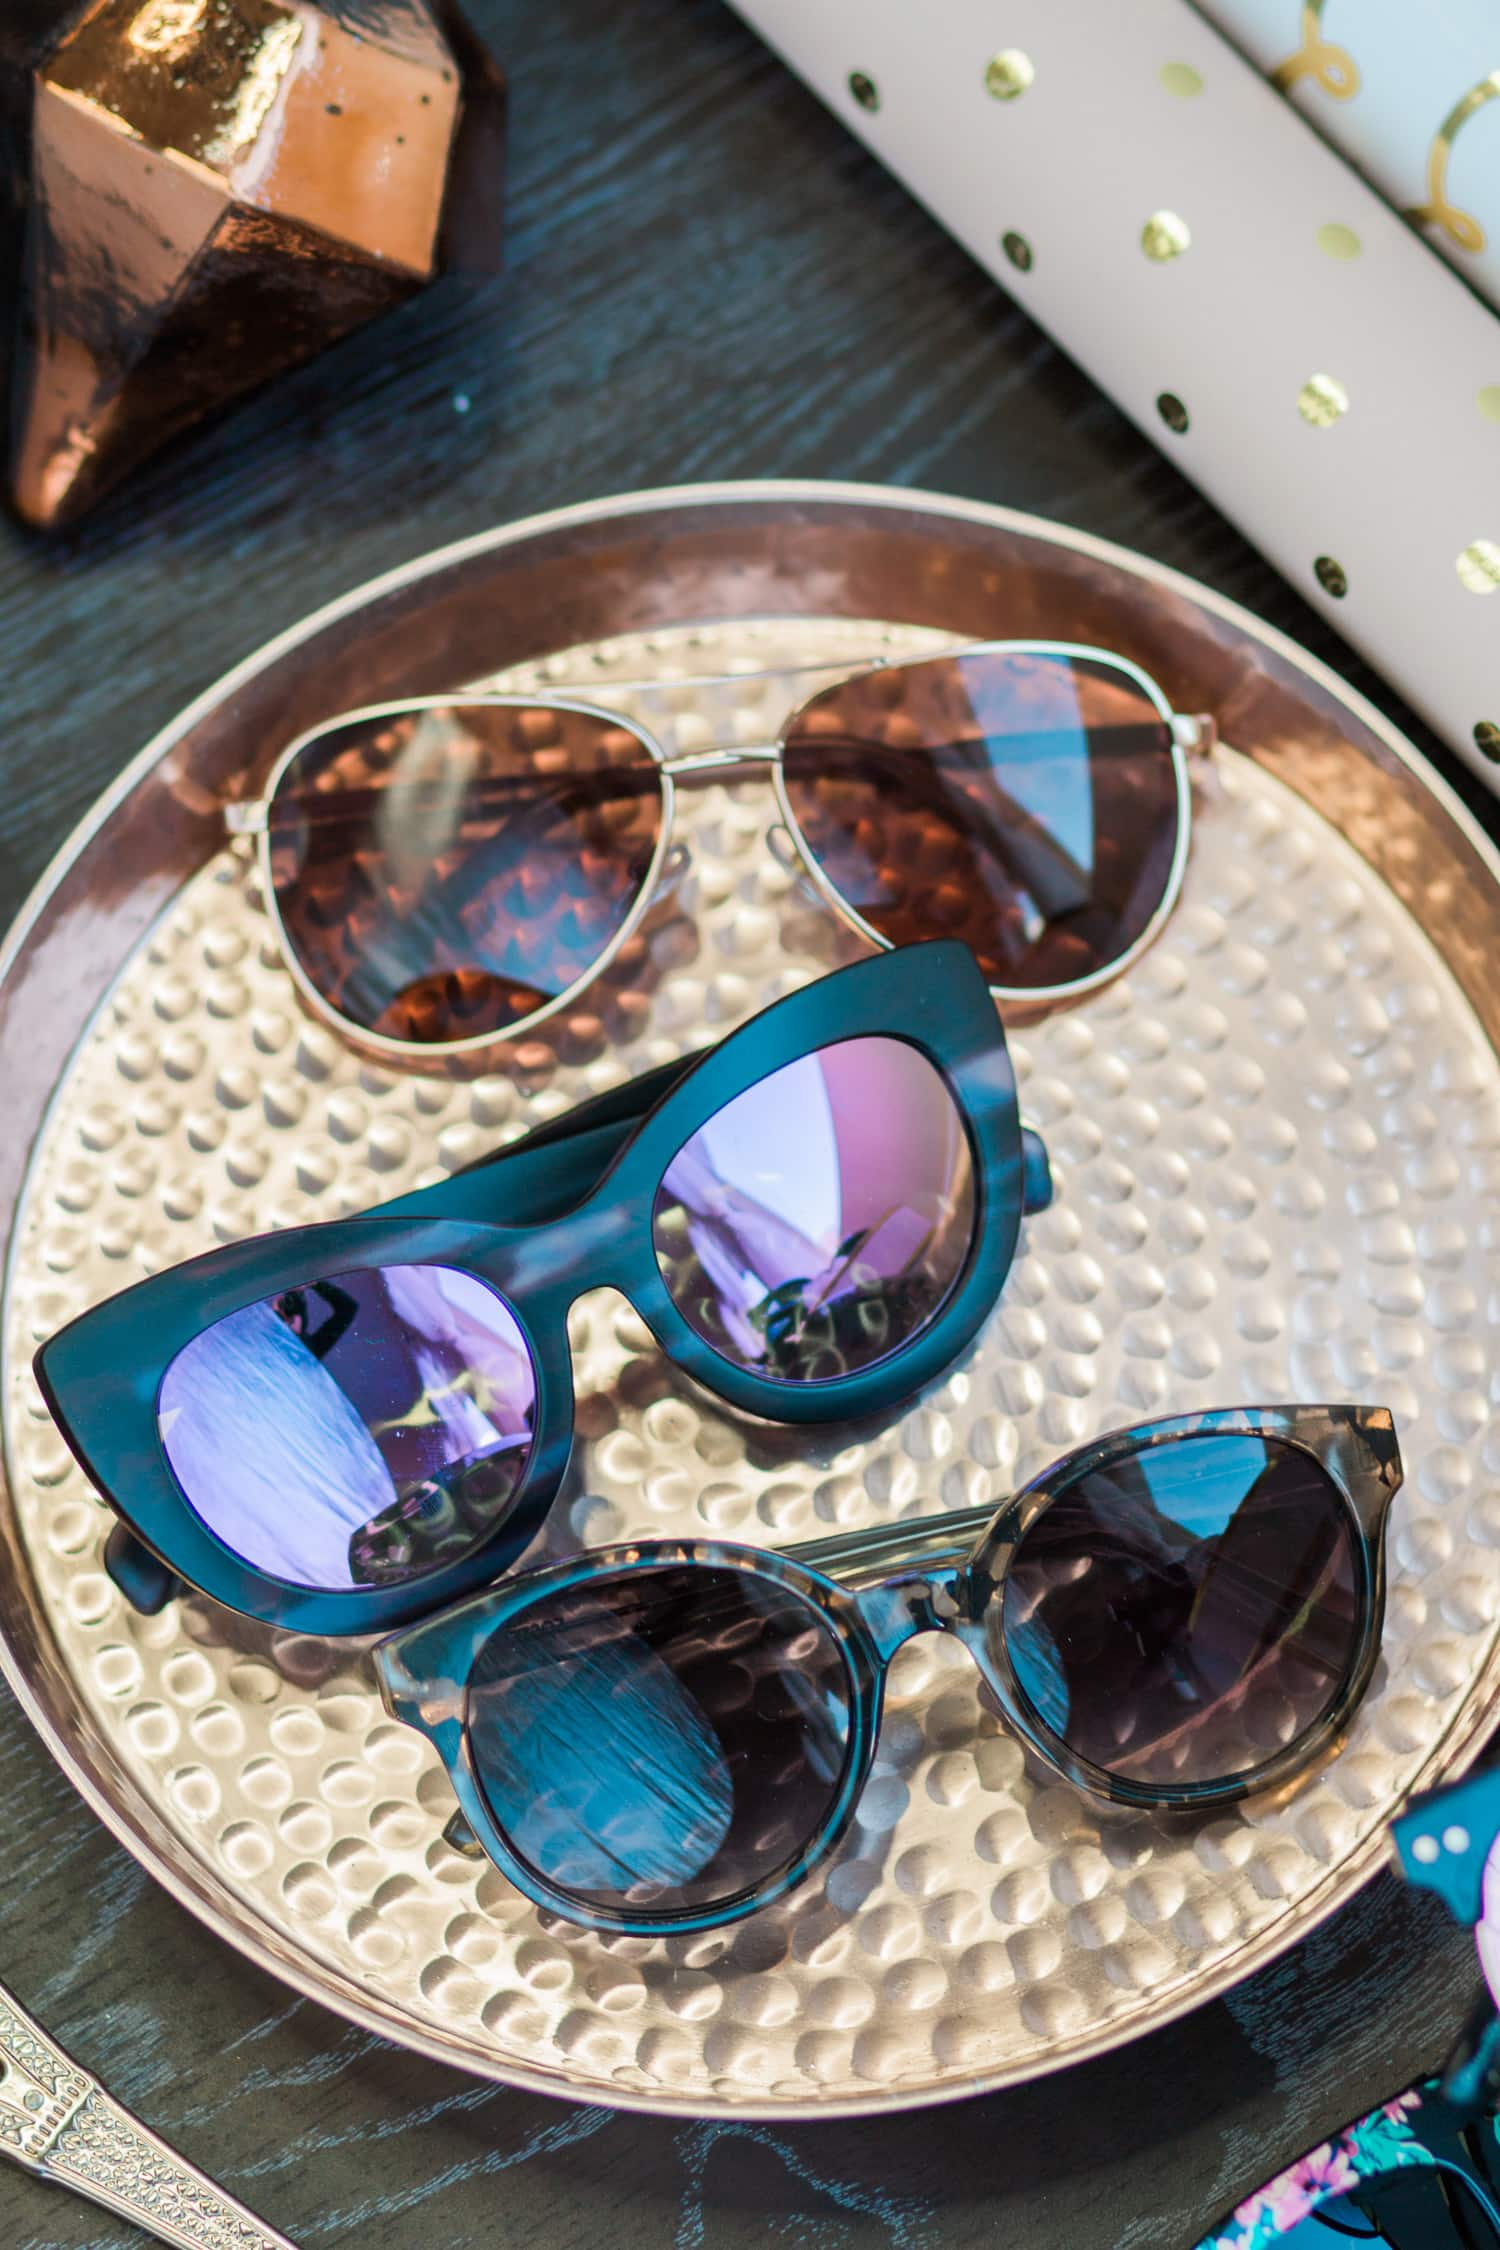 stocking-stuffers-for-women-and-teens-foster-grant-affordable-sunglasses-7036